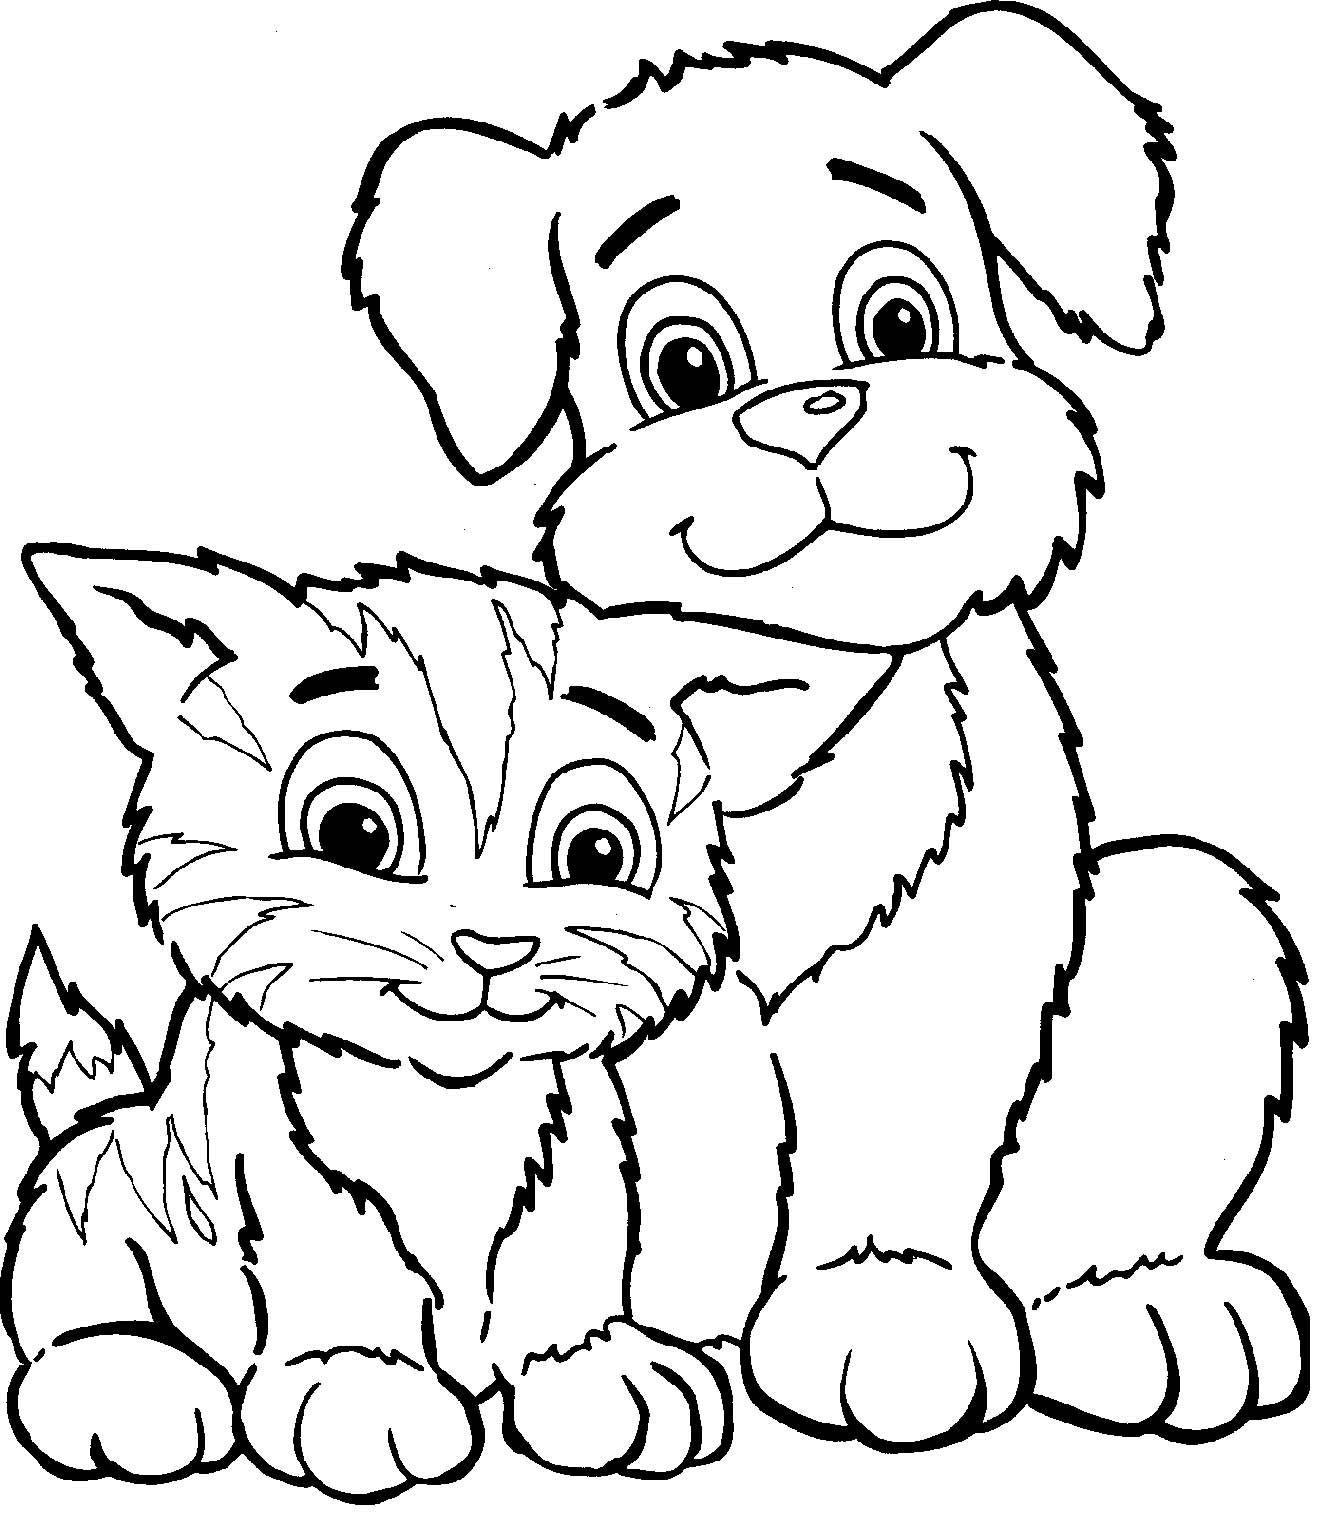 dog cats coloring pages - photo#26